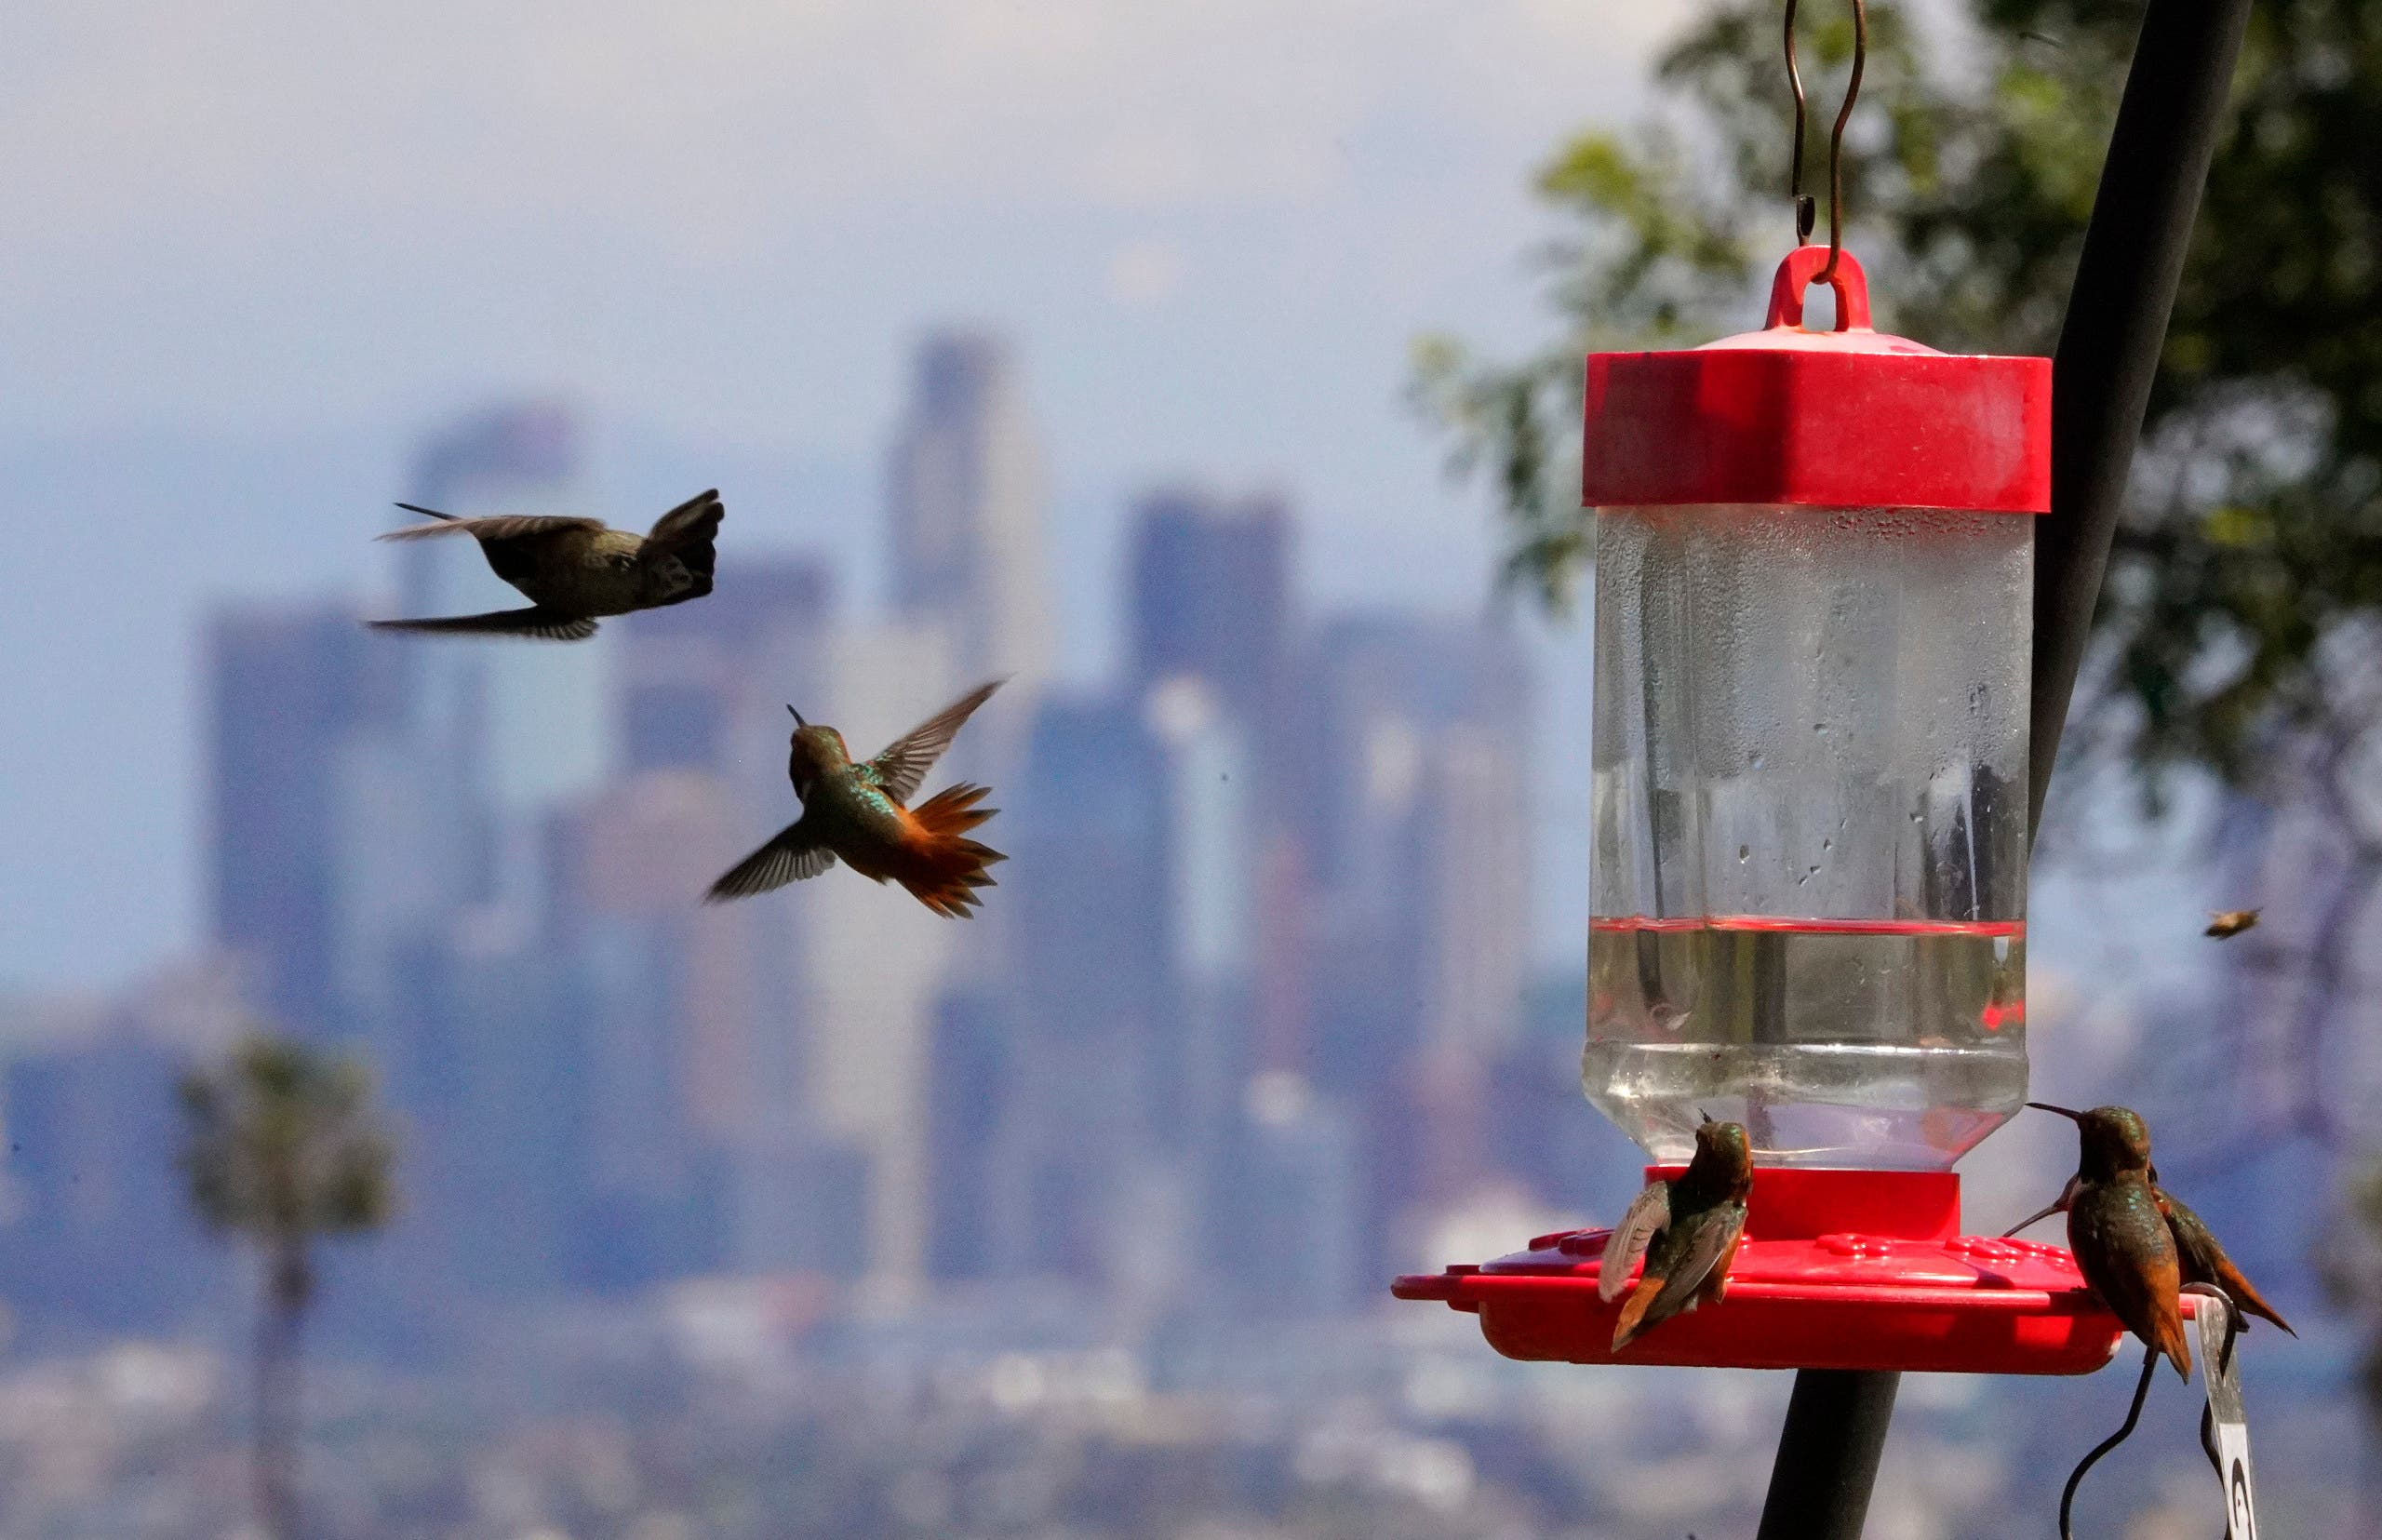 Hummingbirds feed at Kenneth Hahn State Recreation Area as downtown Los Angeles is seen in the background, Friday, March 27, 2020, in Los Angeles. (AP)